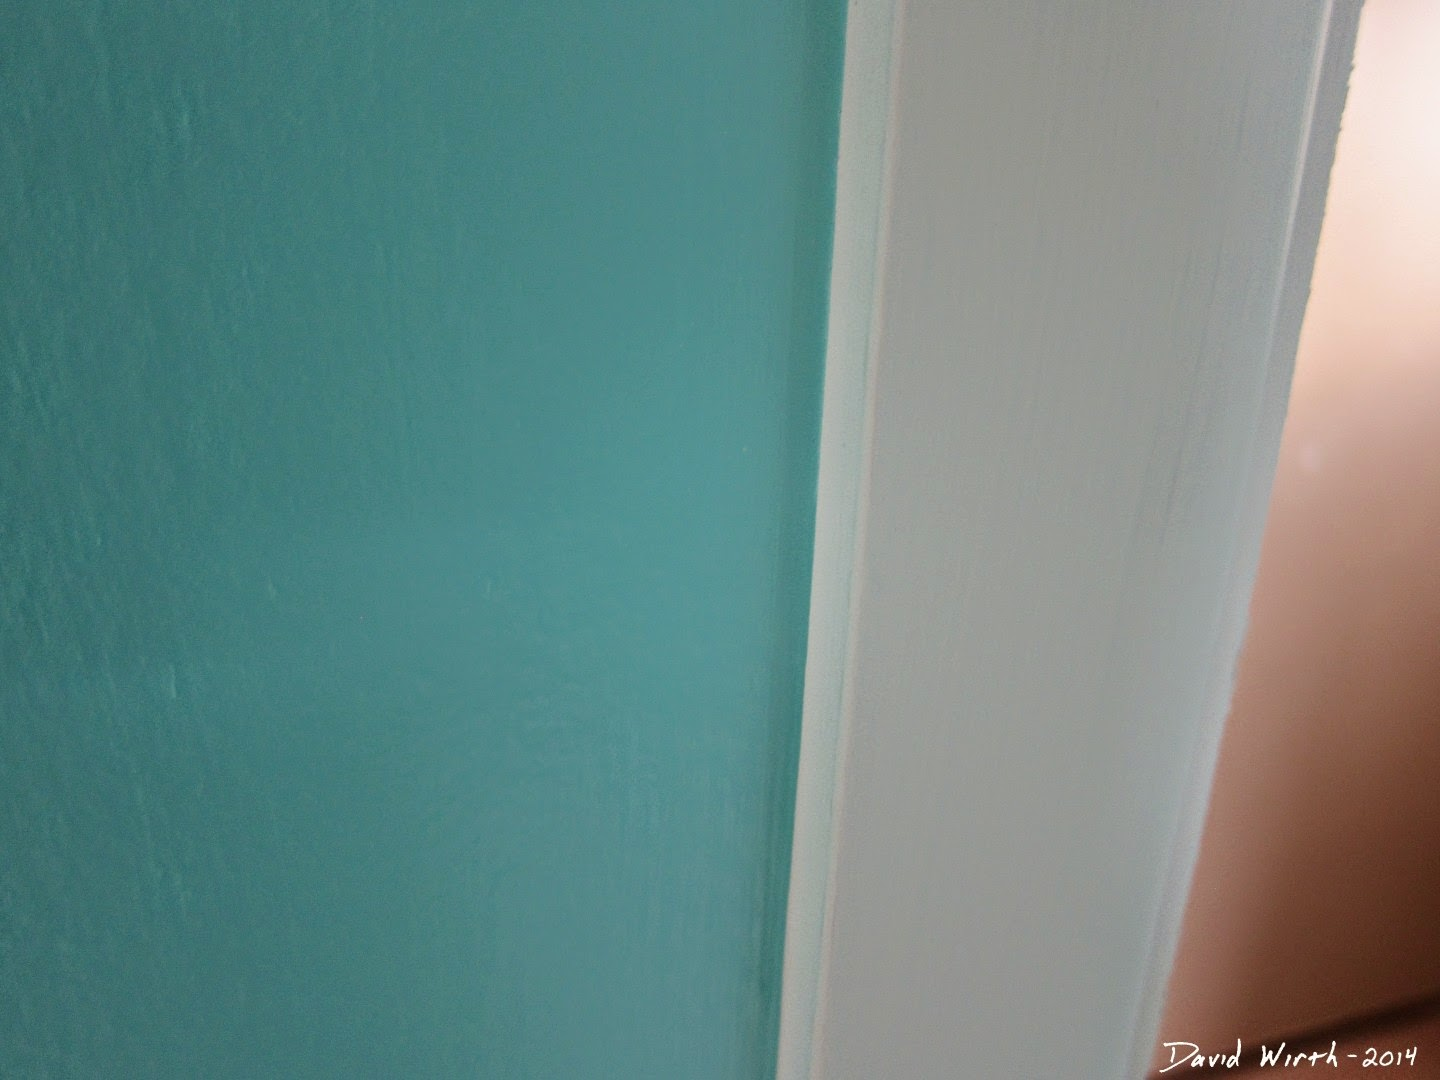 how to paint a straight edge on a wall, corner, trim